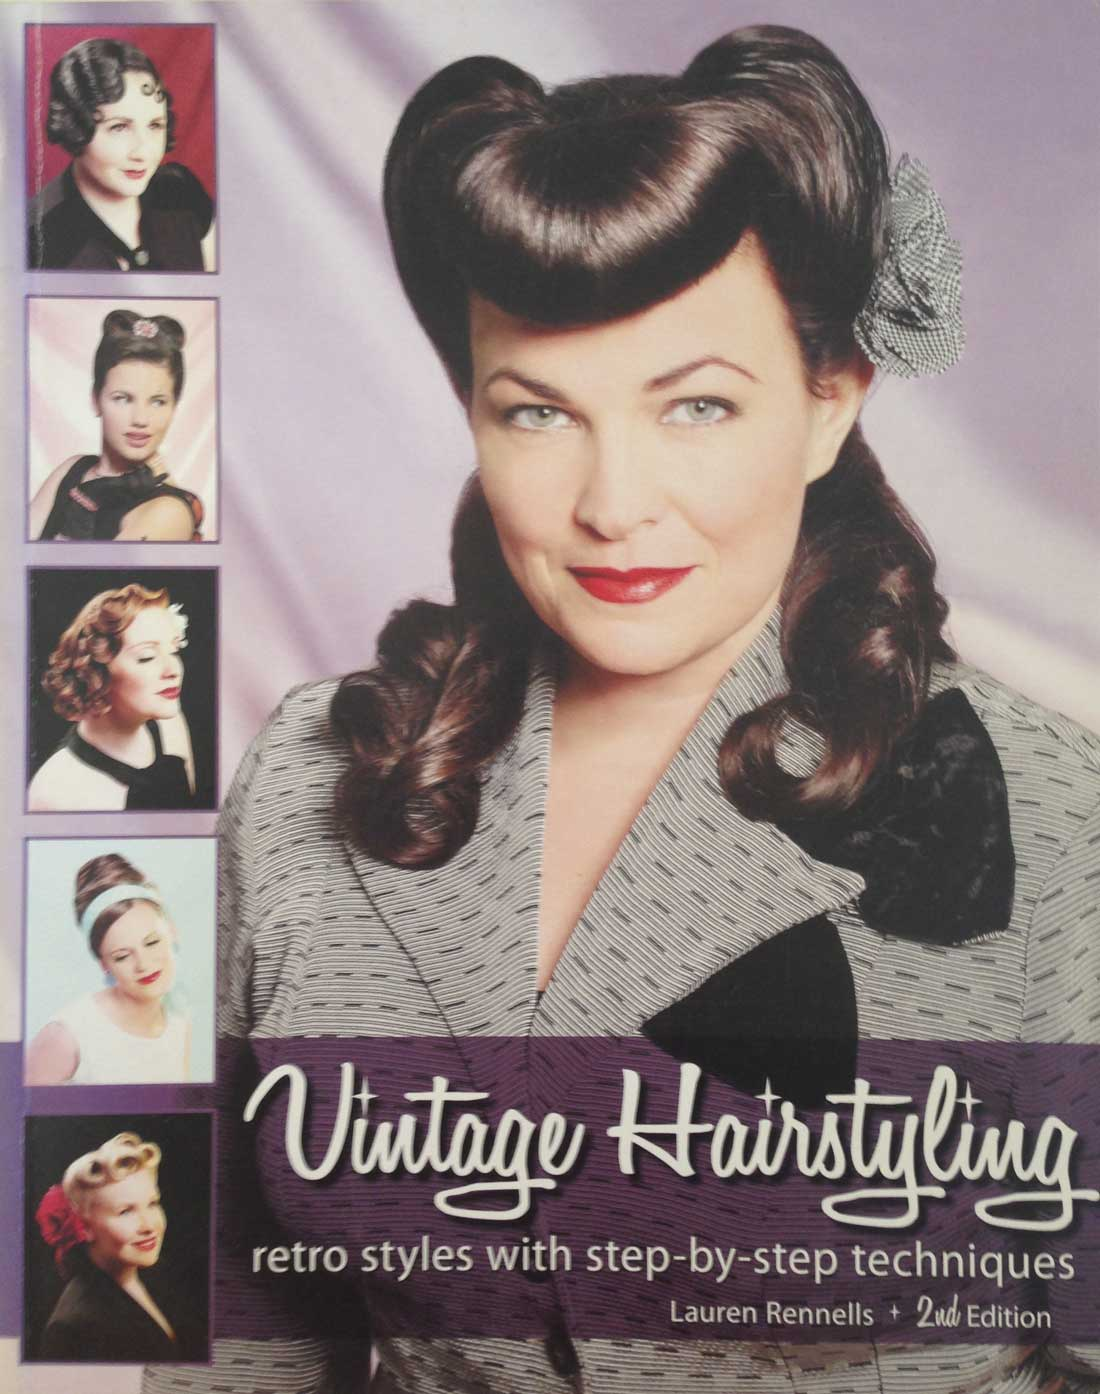 Vintage-Hairstyling-2